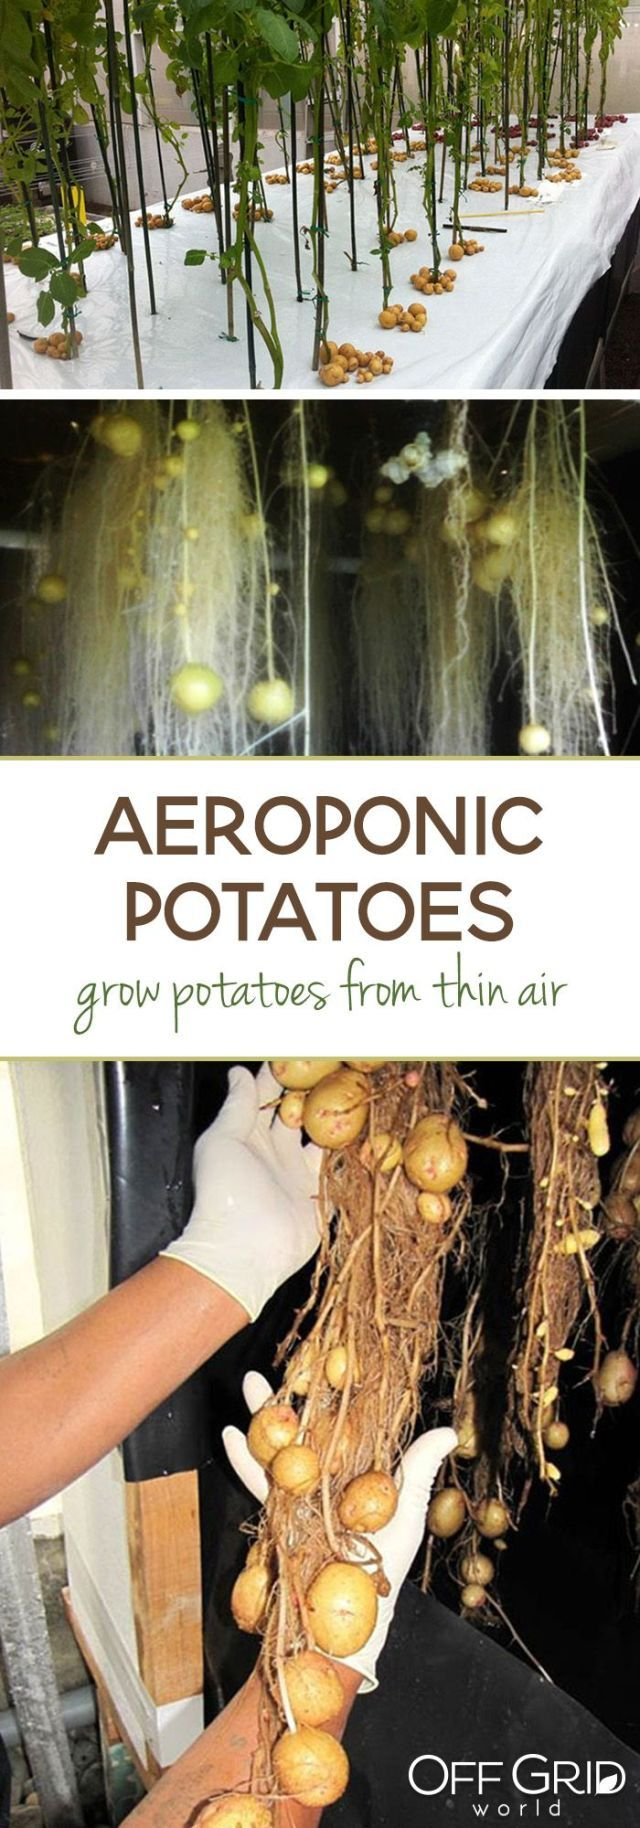 Growing Potatoes in Thin Air with Aeroponics #Aeroponics #Air #Growing #Potatoes #Thin #growingpotatoes